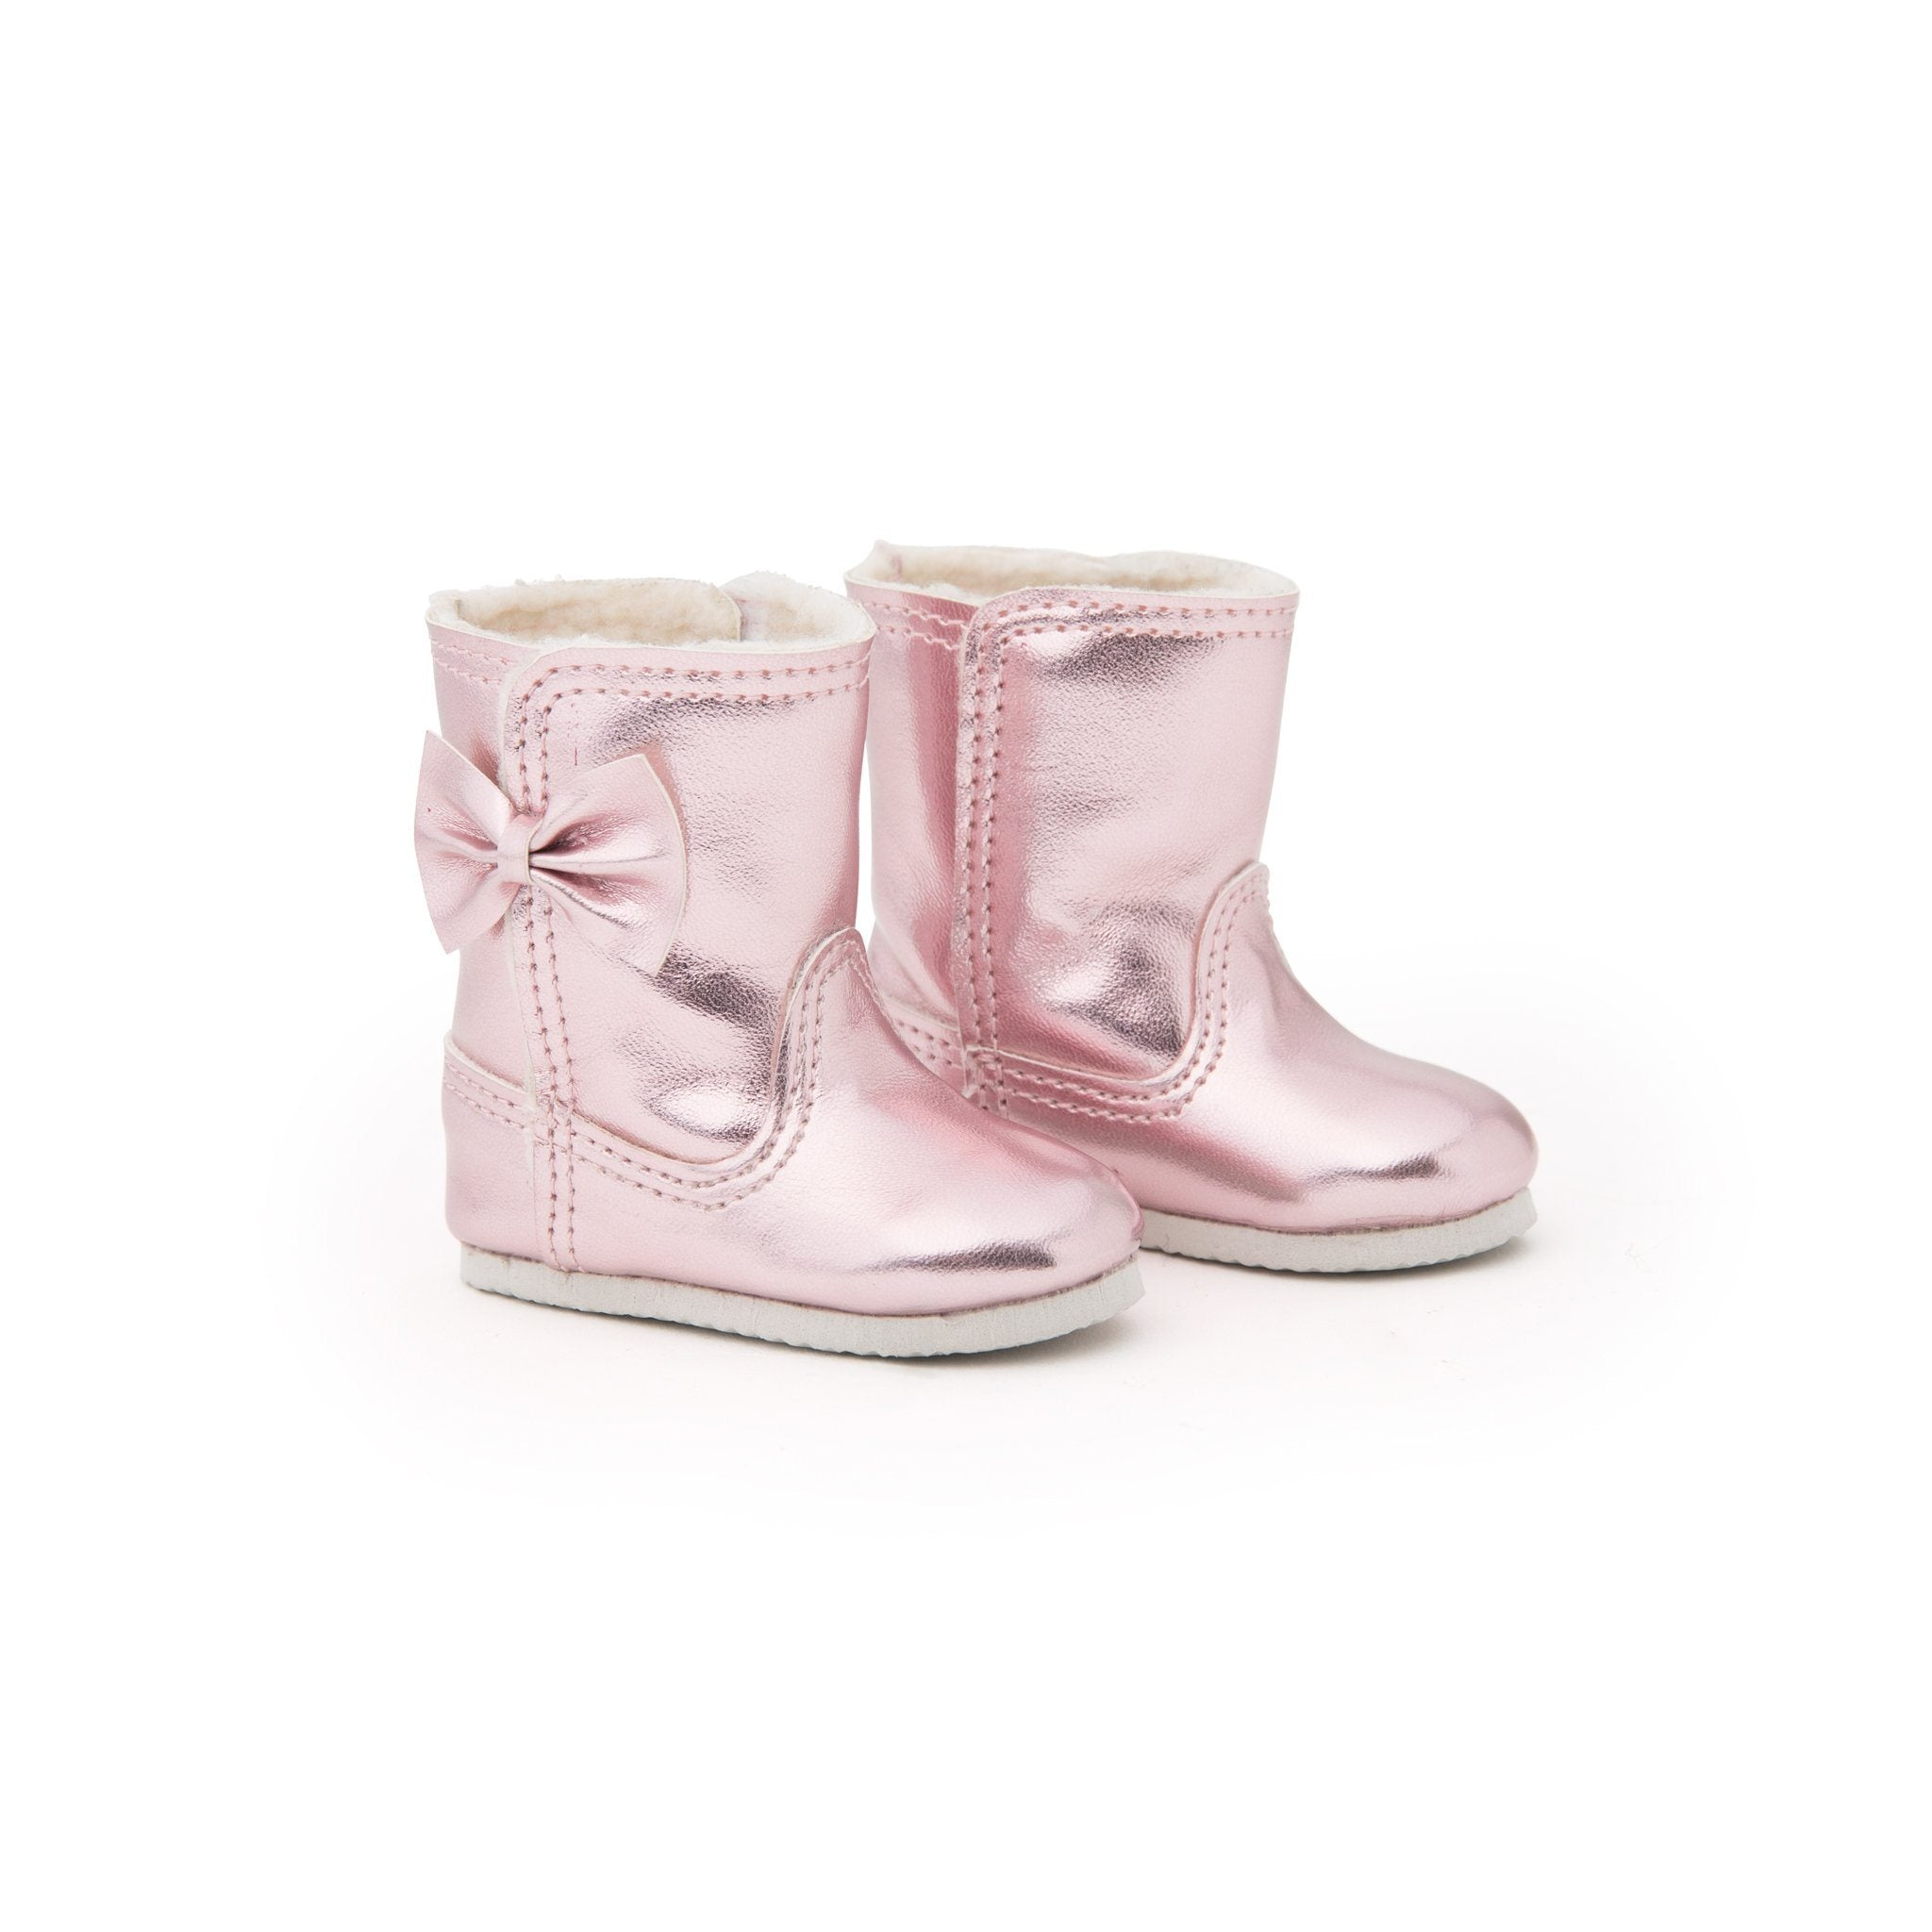 Shiny pink boots with bow fit all 18 inch dolls.